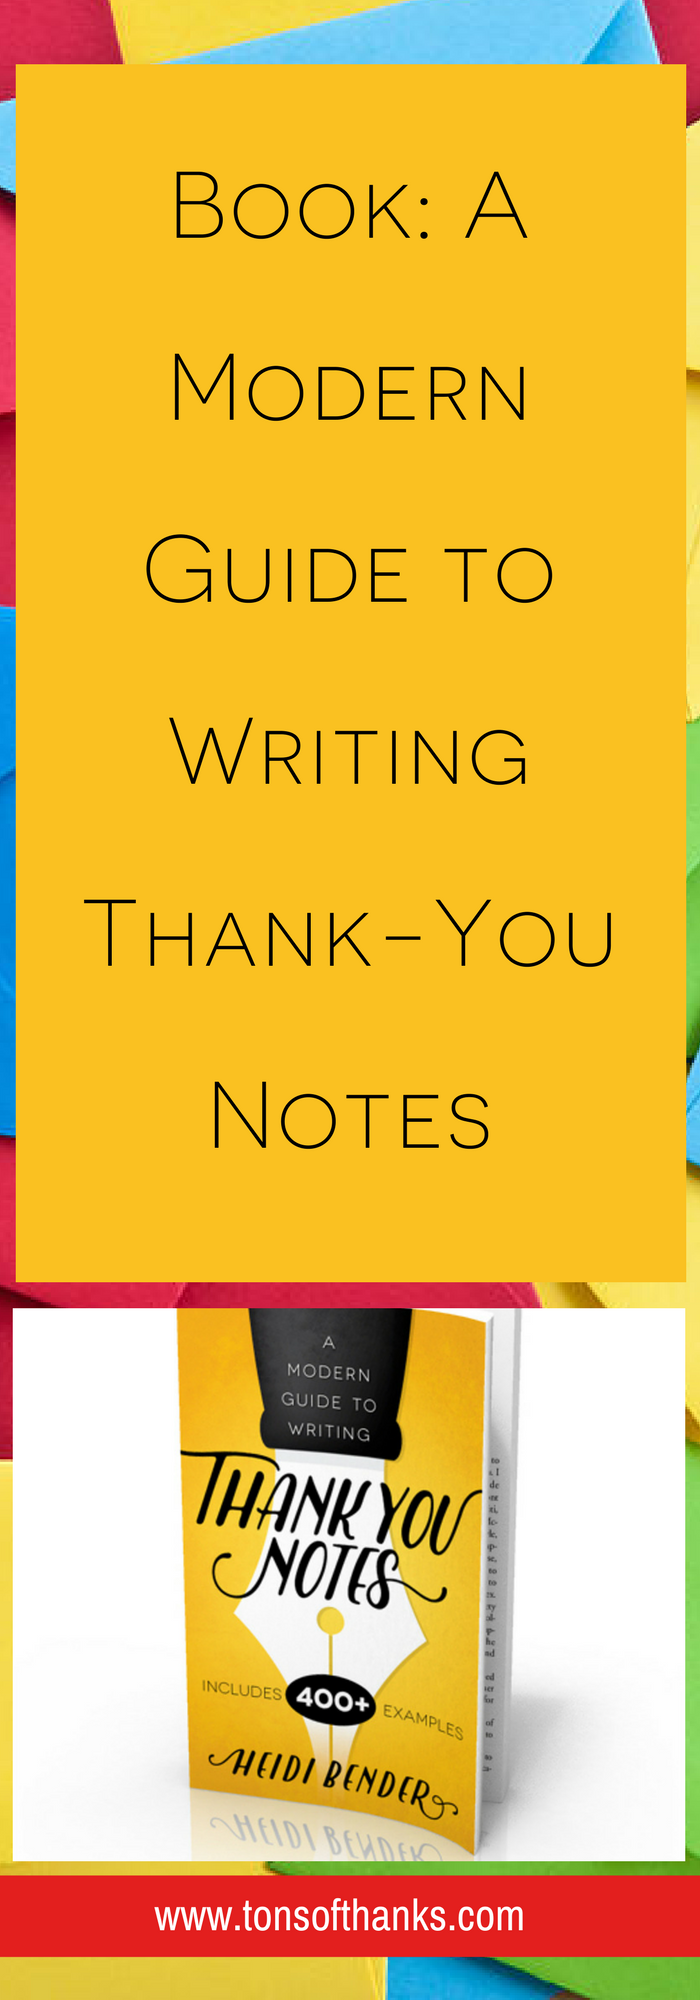 A Modern Guide To Writing ThankYou Notes Is Packed With Over